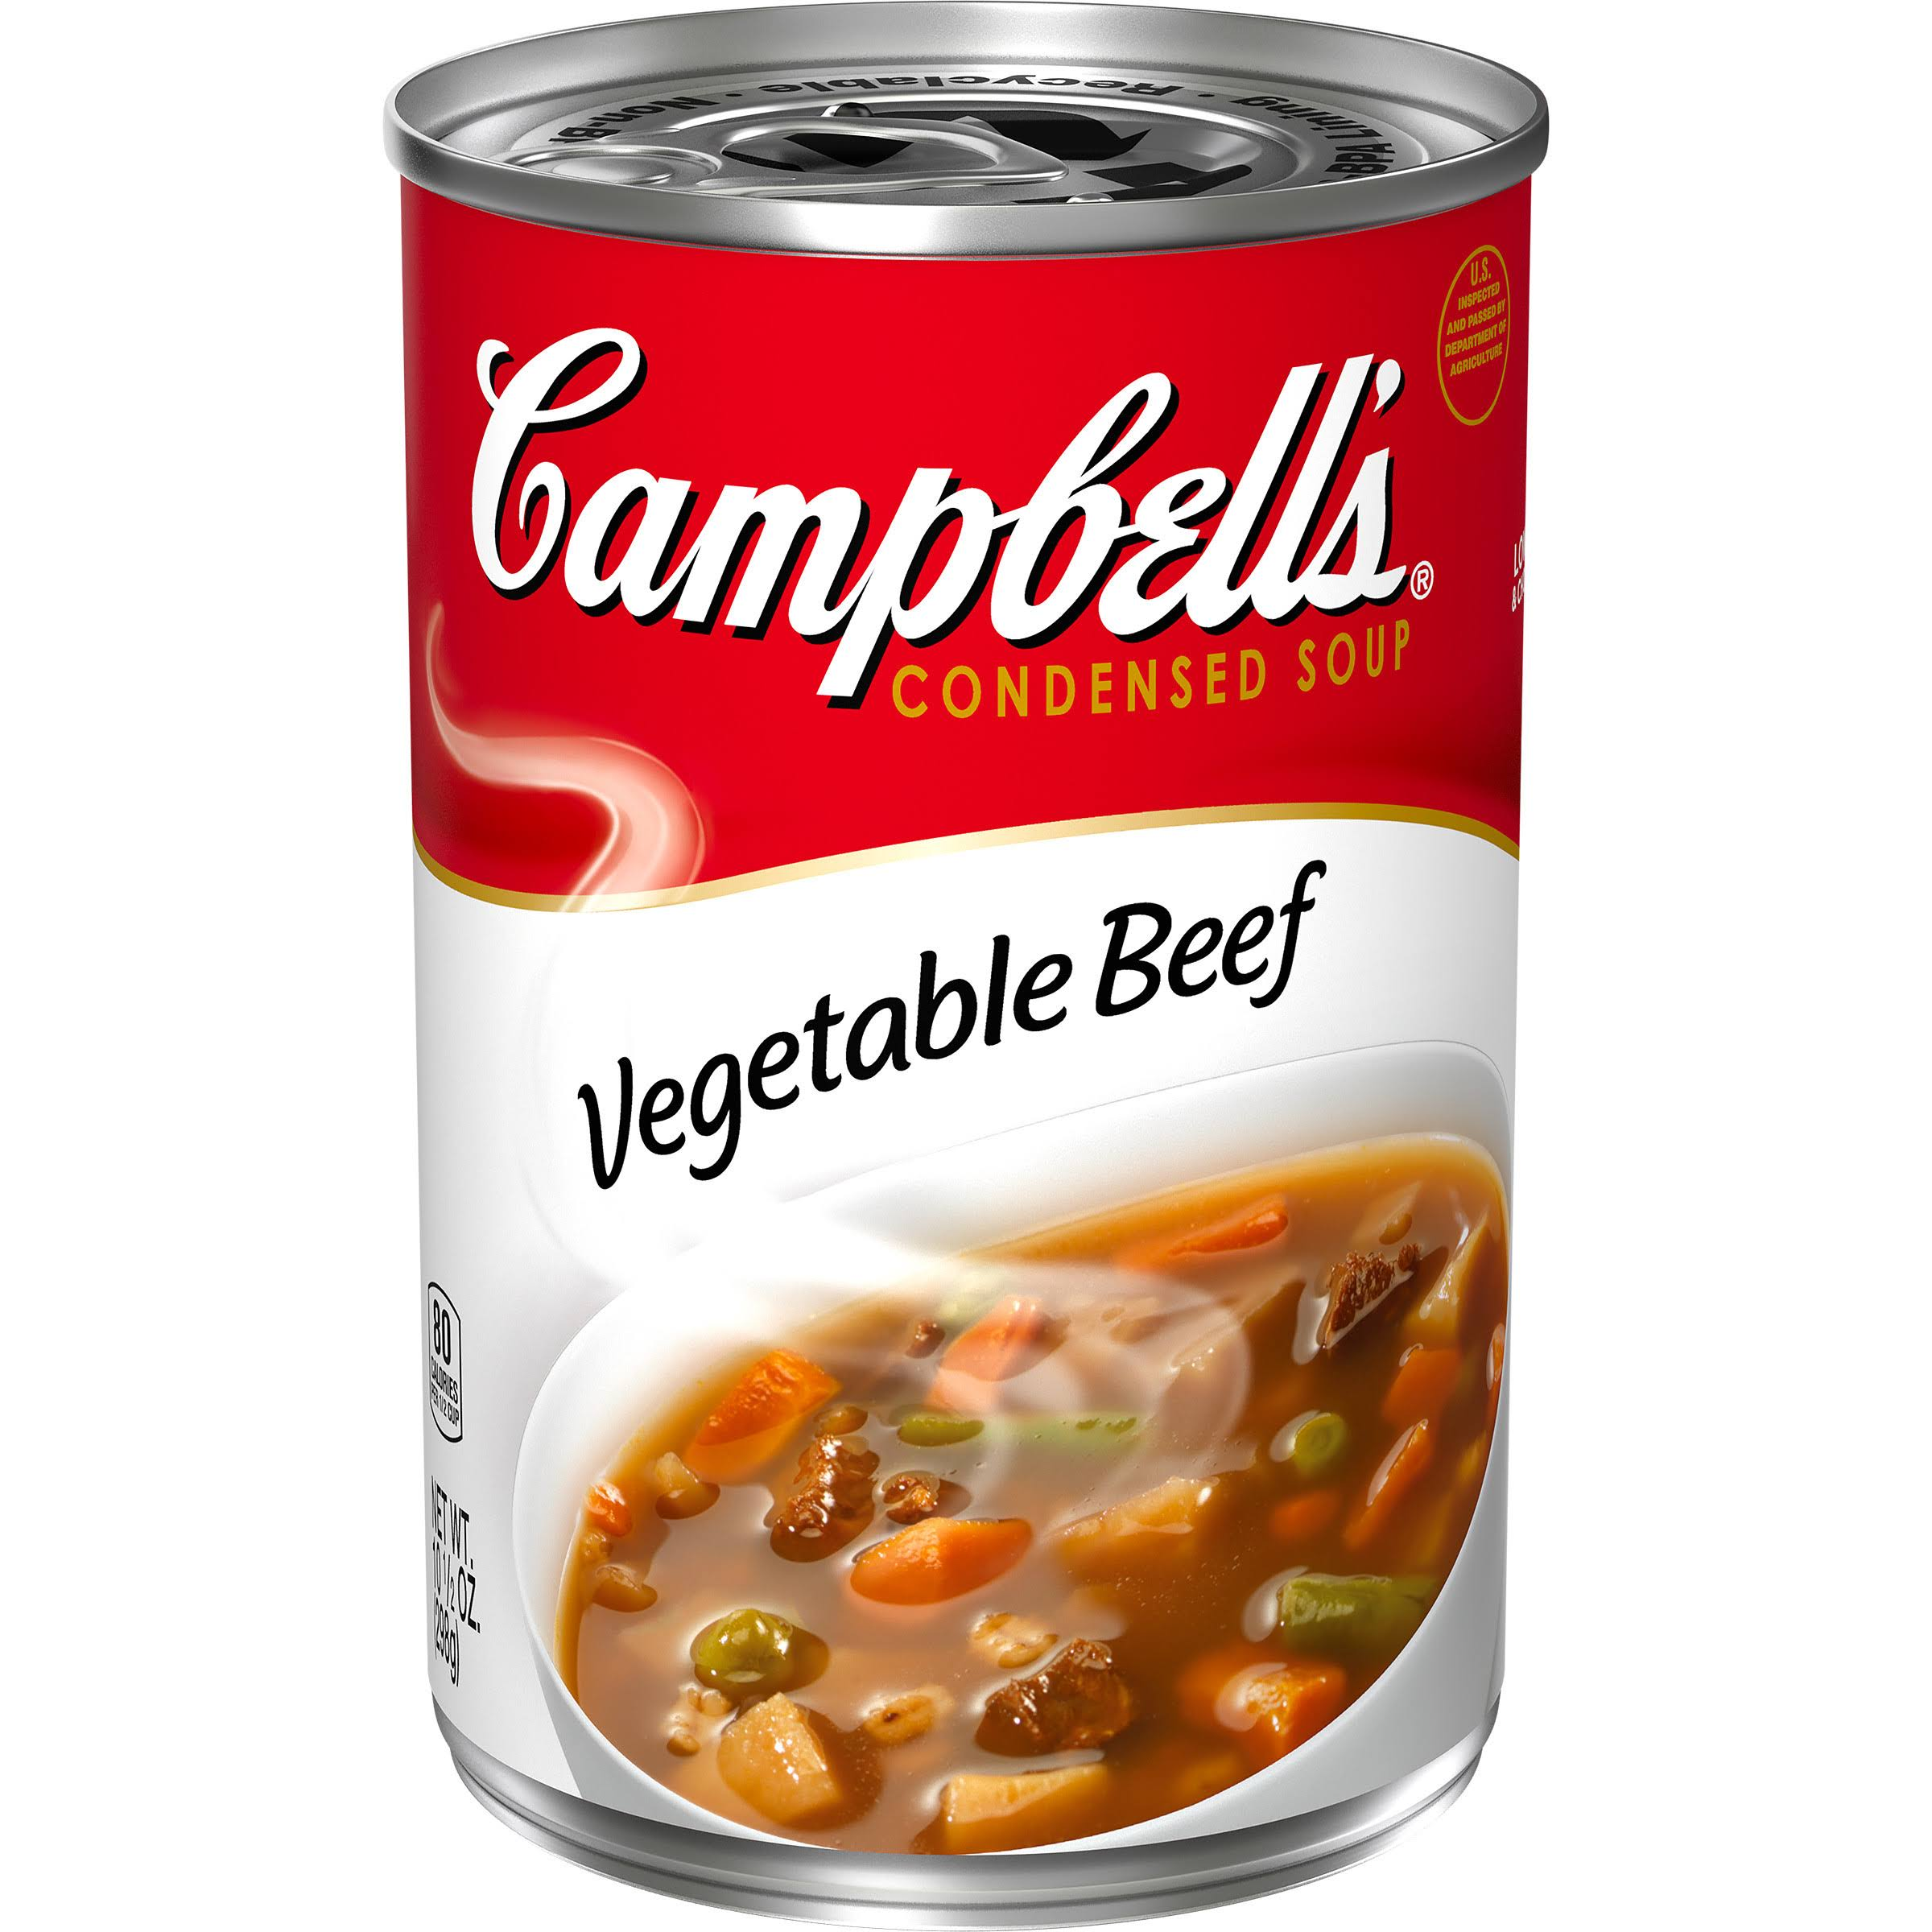 Campbell's Vegetable Beef Condensed Soup - 10.5oz